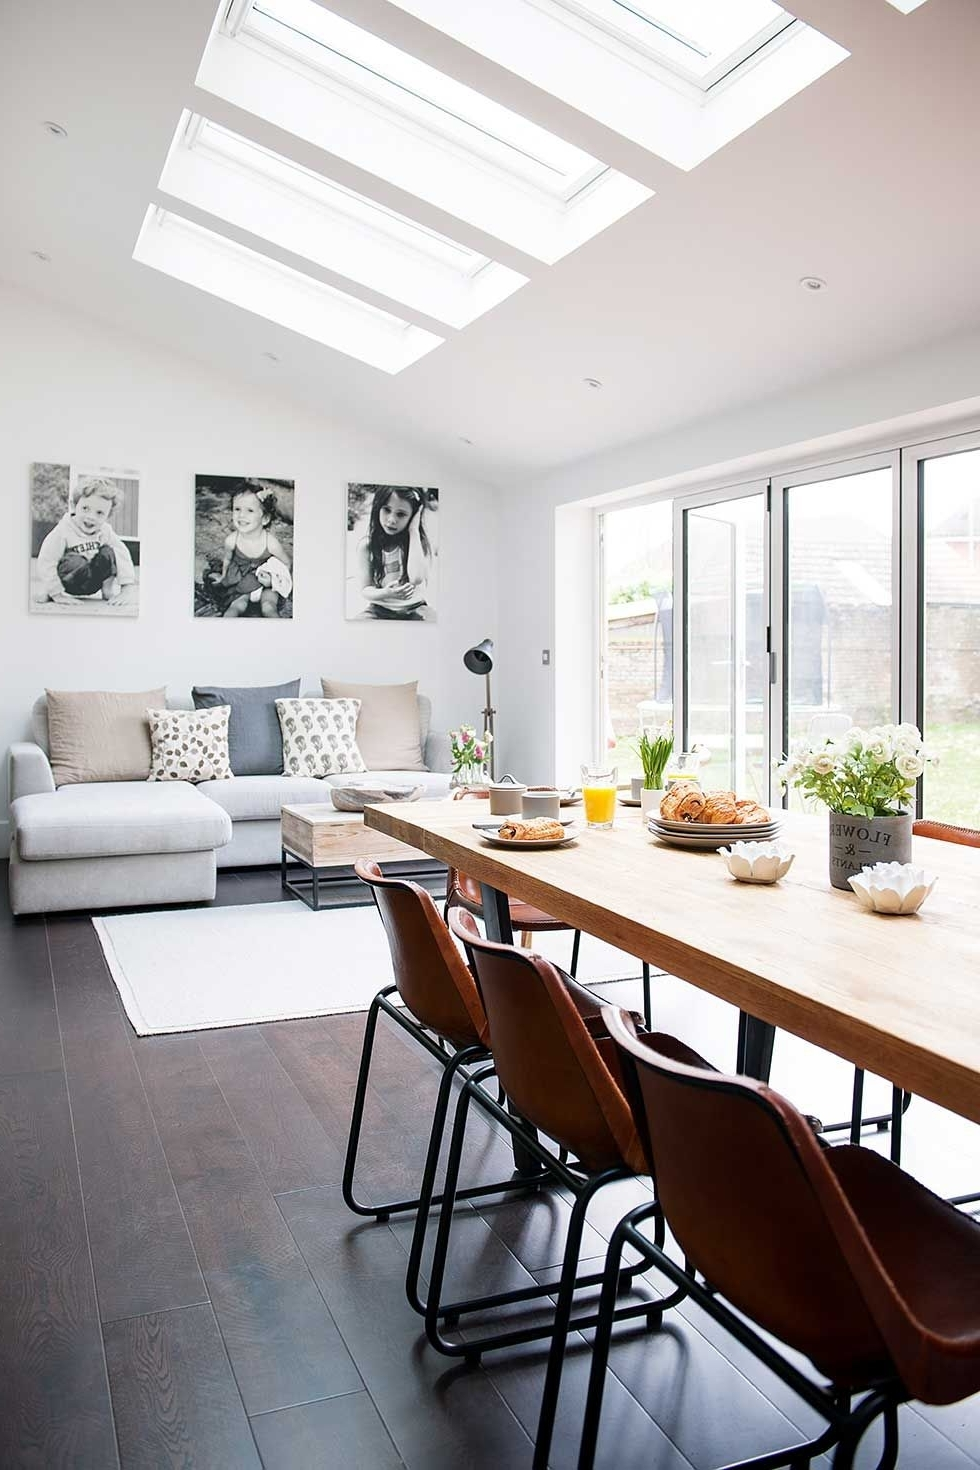 2019 Industrial Kitchen Extension Dining Living Rooflights With Sofa Intended For Sofas For Kitchen Diner (View 2 of 20)